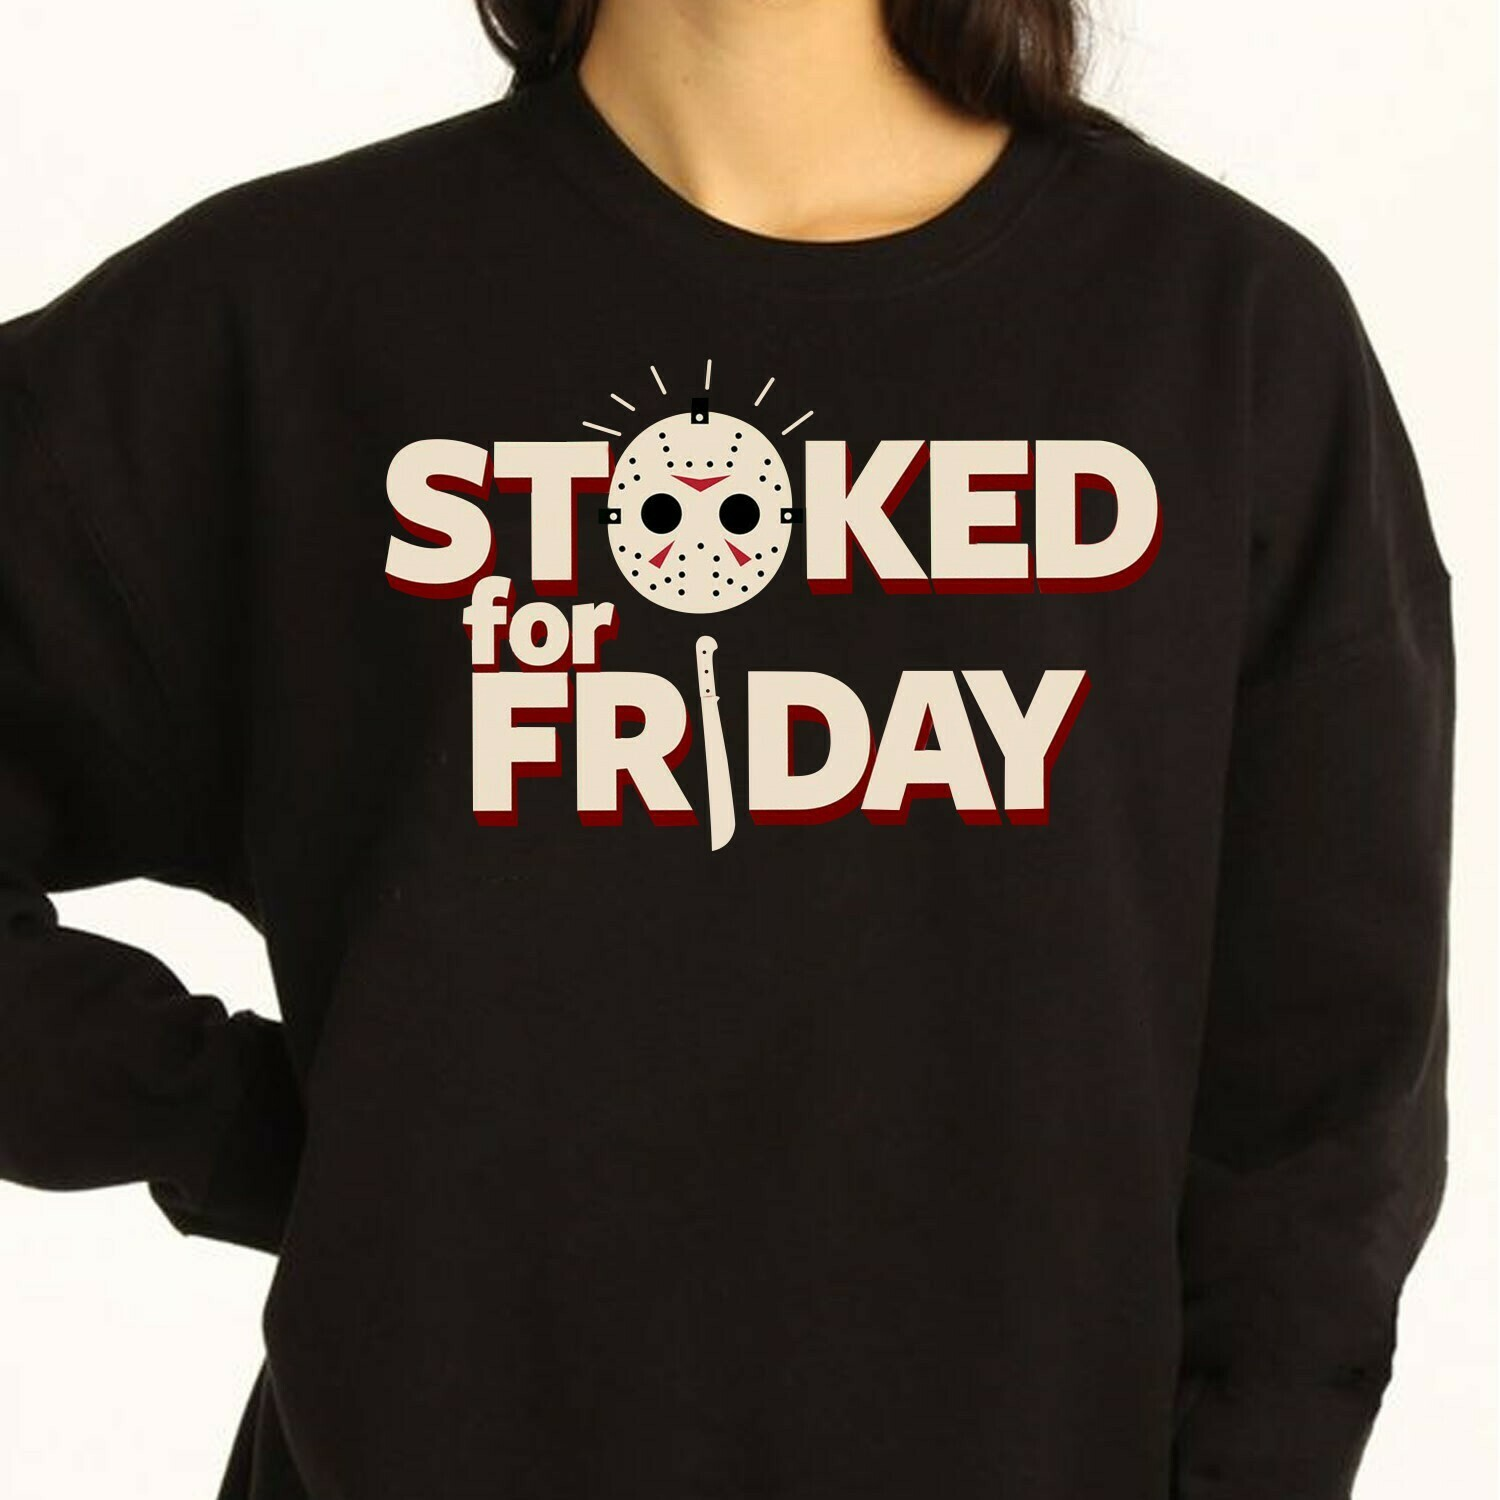 Funny Horror Stoked For Friday Jason Voorhees Friday The 13th Villains Halloween Movie Mashup Halloween Squad Tee T Shirt Long Sleeve Sweatshirt Hoodie Jolly Family Gifts